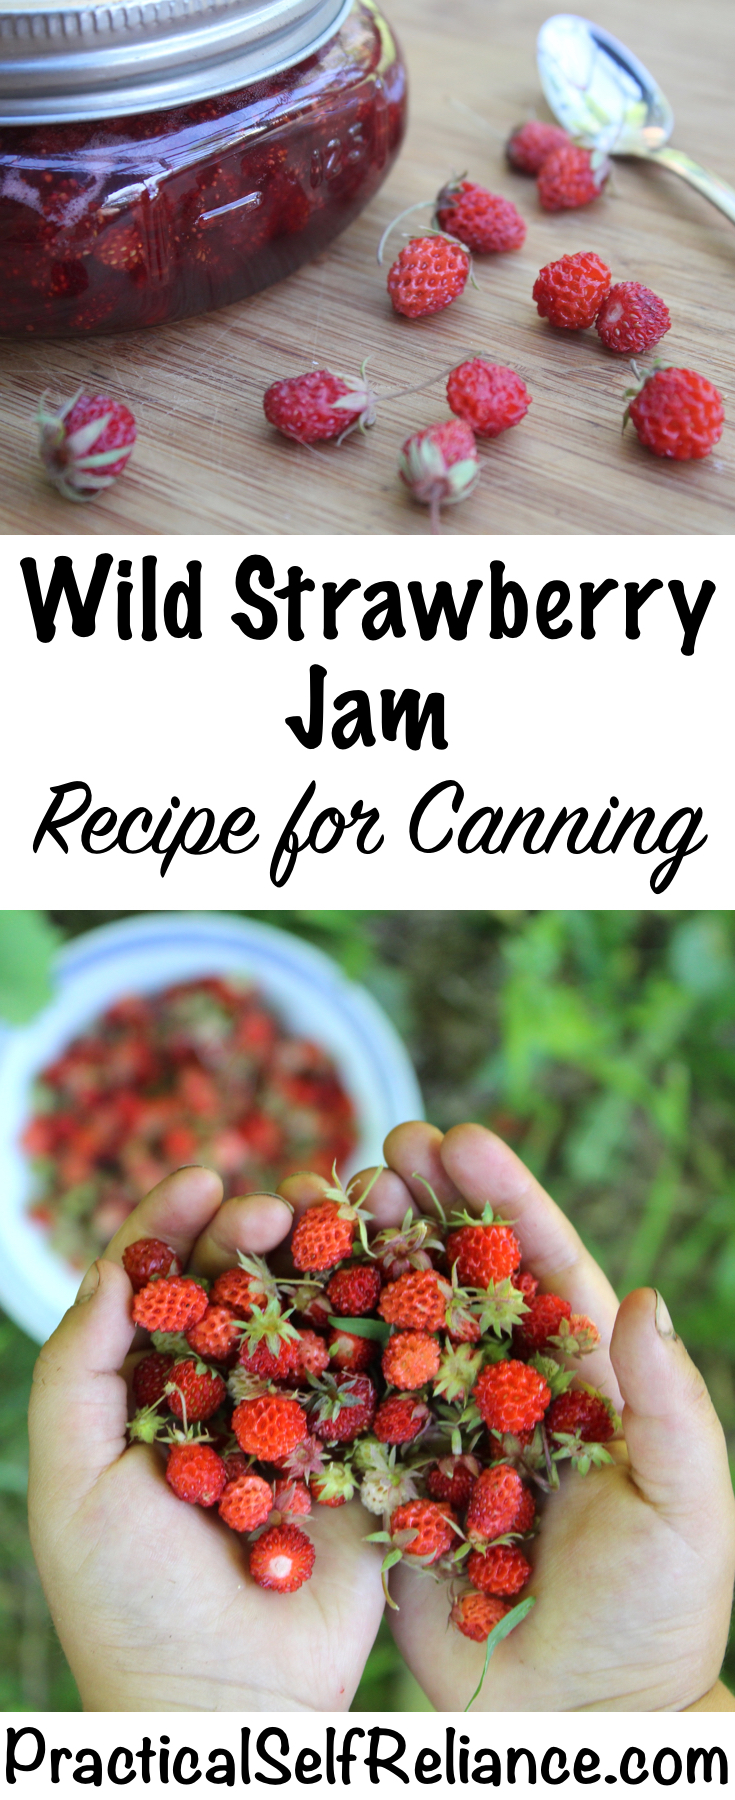 Wild Strawberry Jam Recipe for Canning